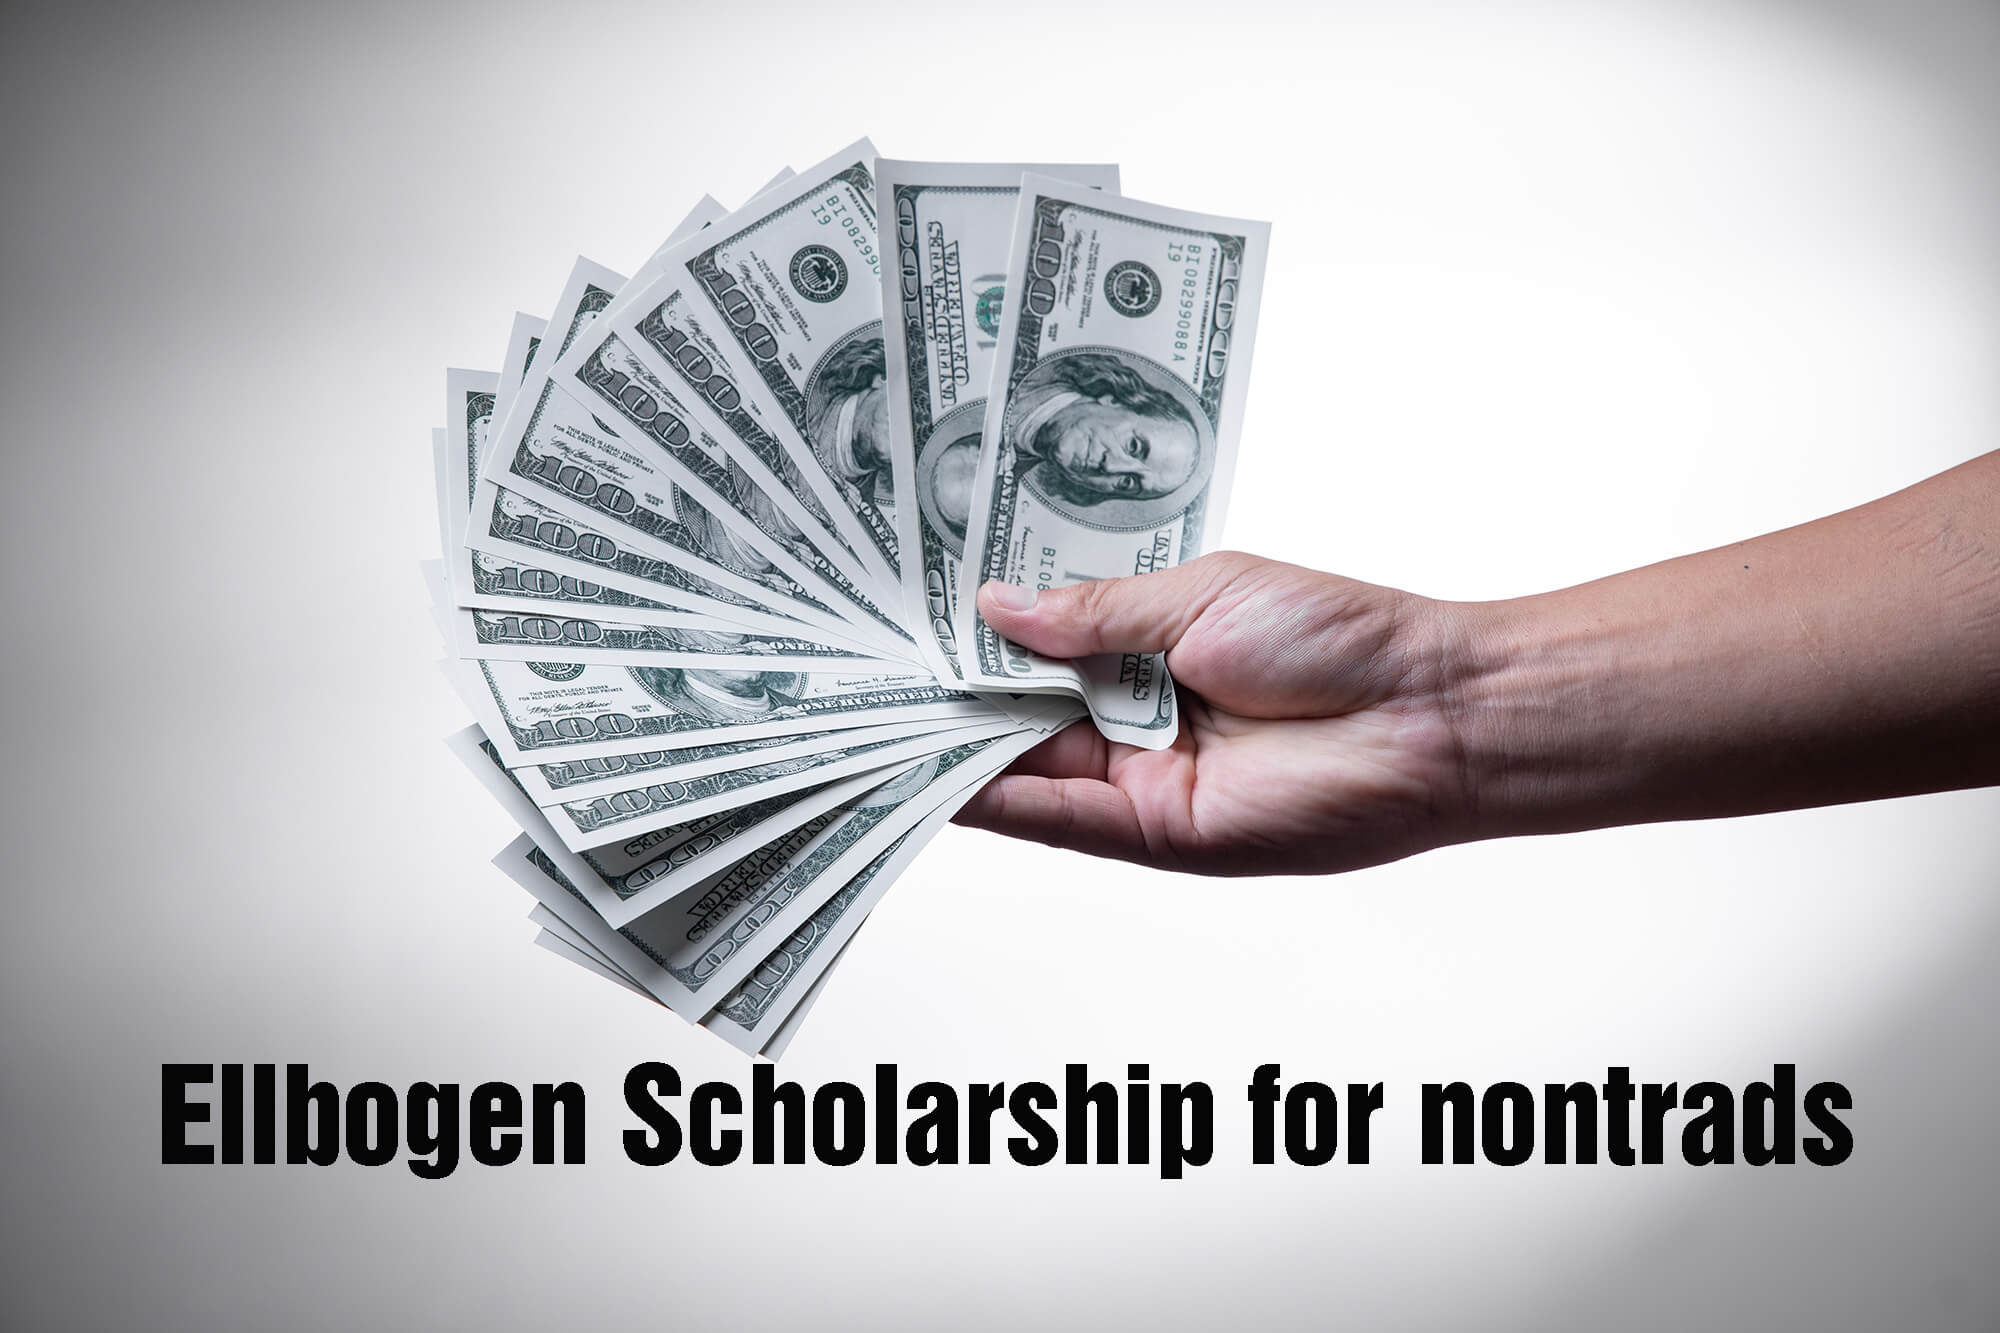 Photo of money in a person's had for the Ellbogen Scholarship press release